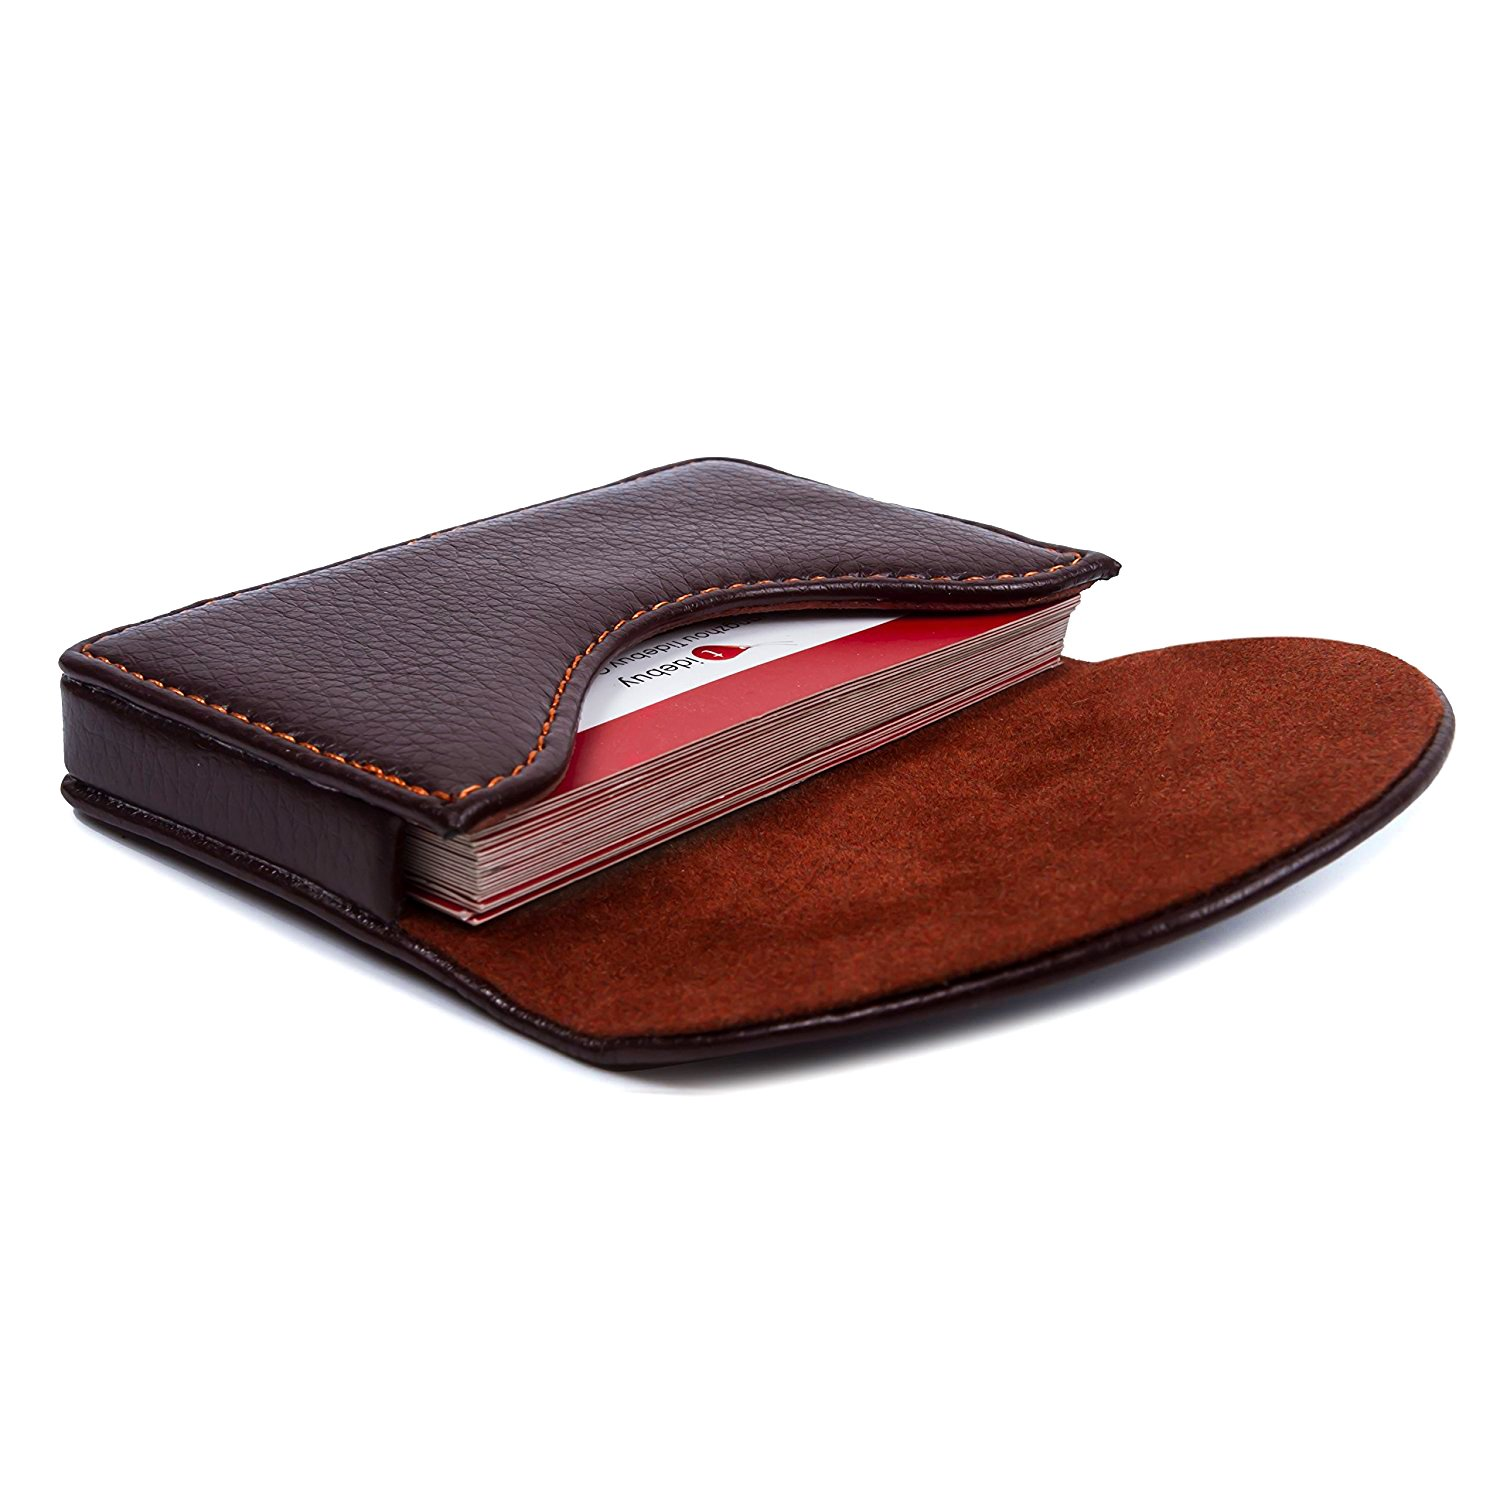 Amazon.com : Leather Business Name Card Holder Case Wallet Credit ...